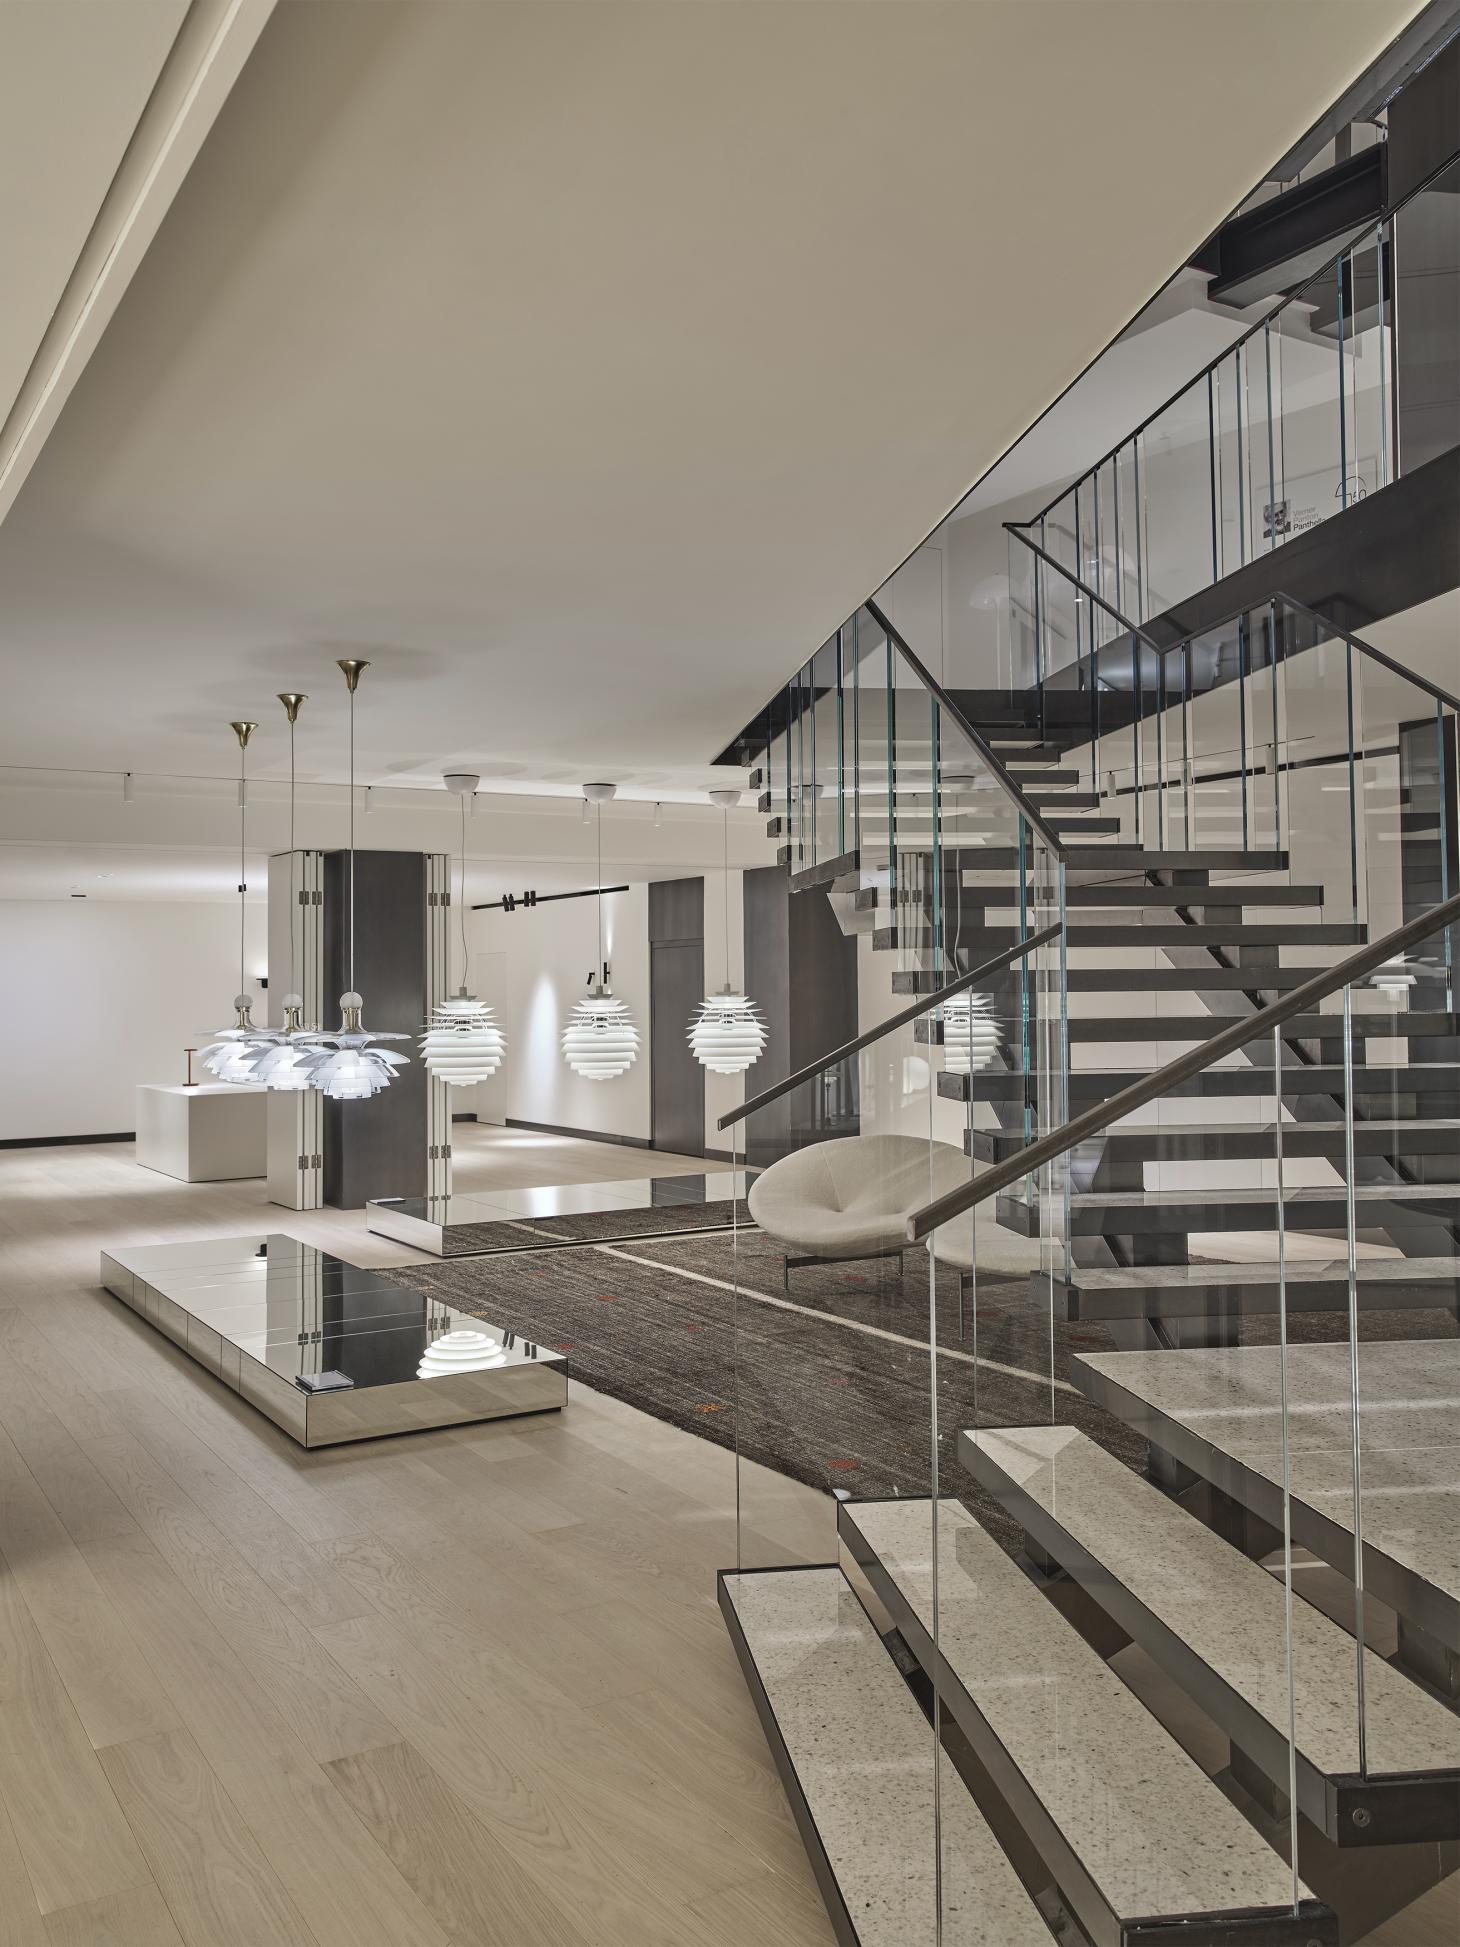 Lighting displays by Louis Poulsen next to a staircase